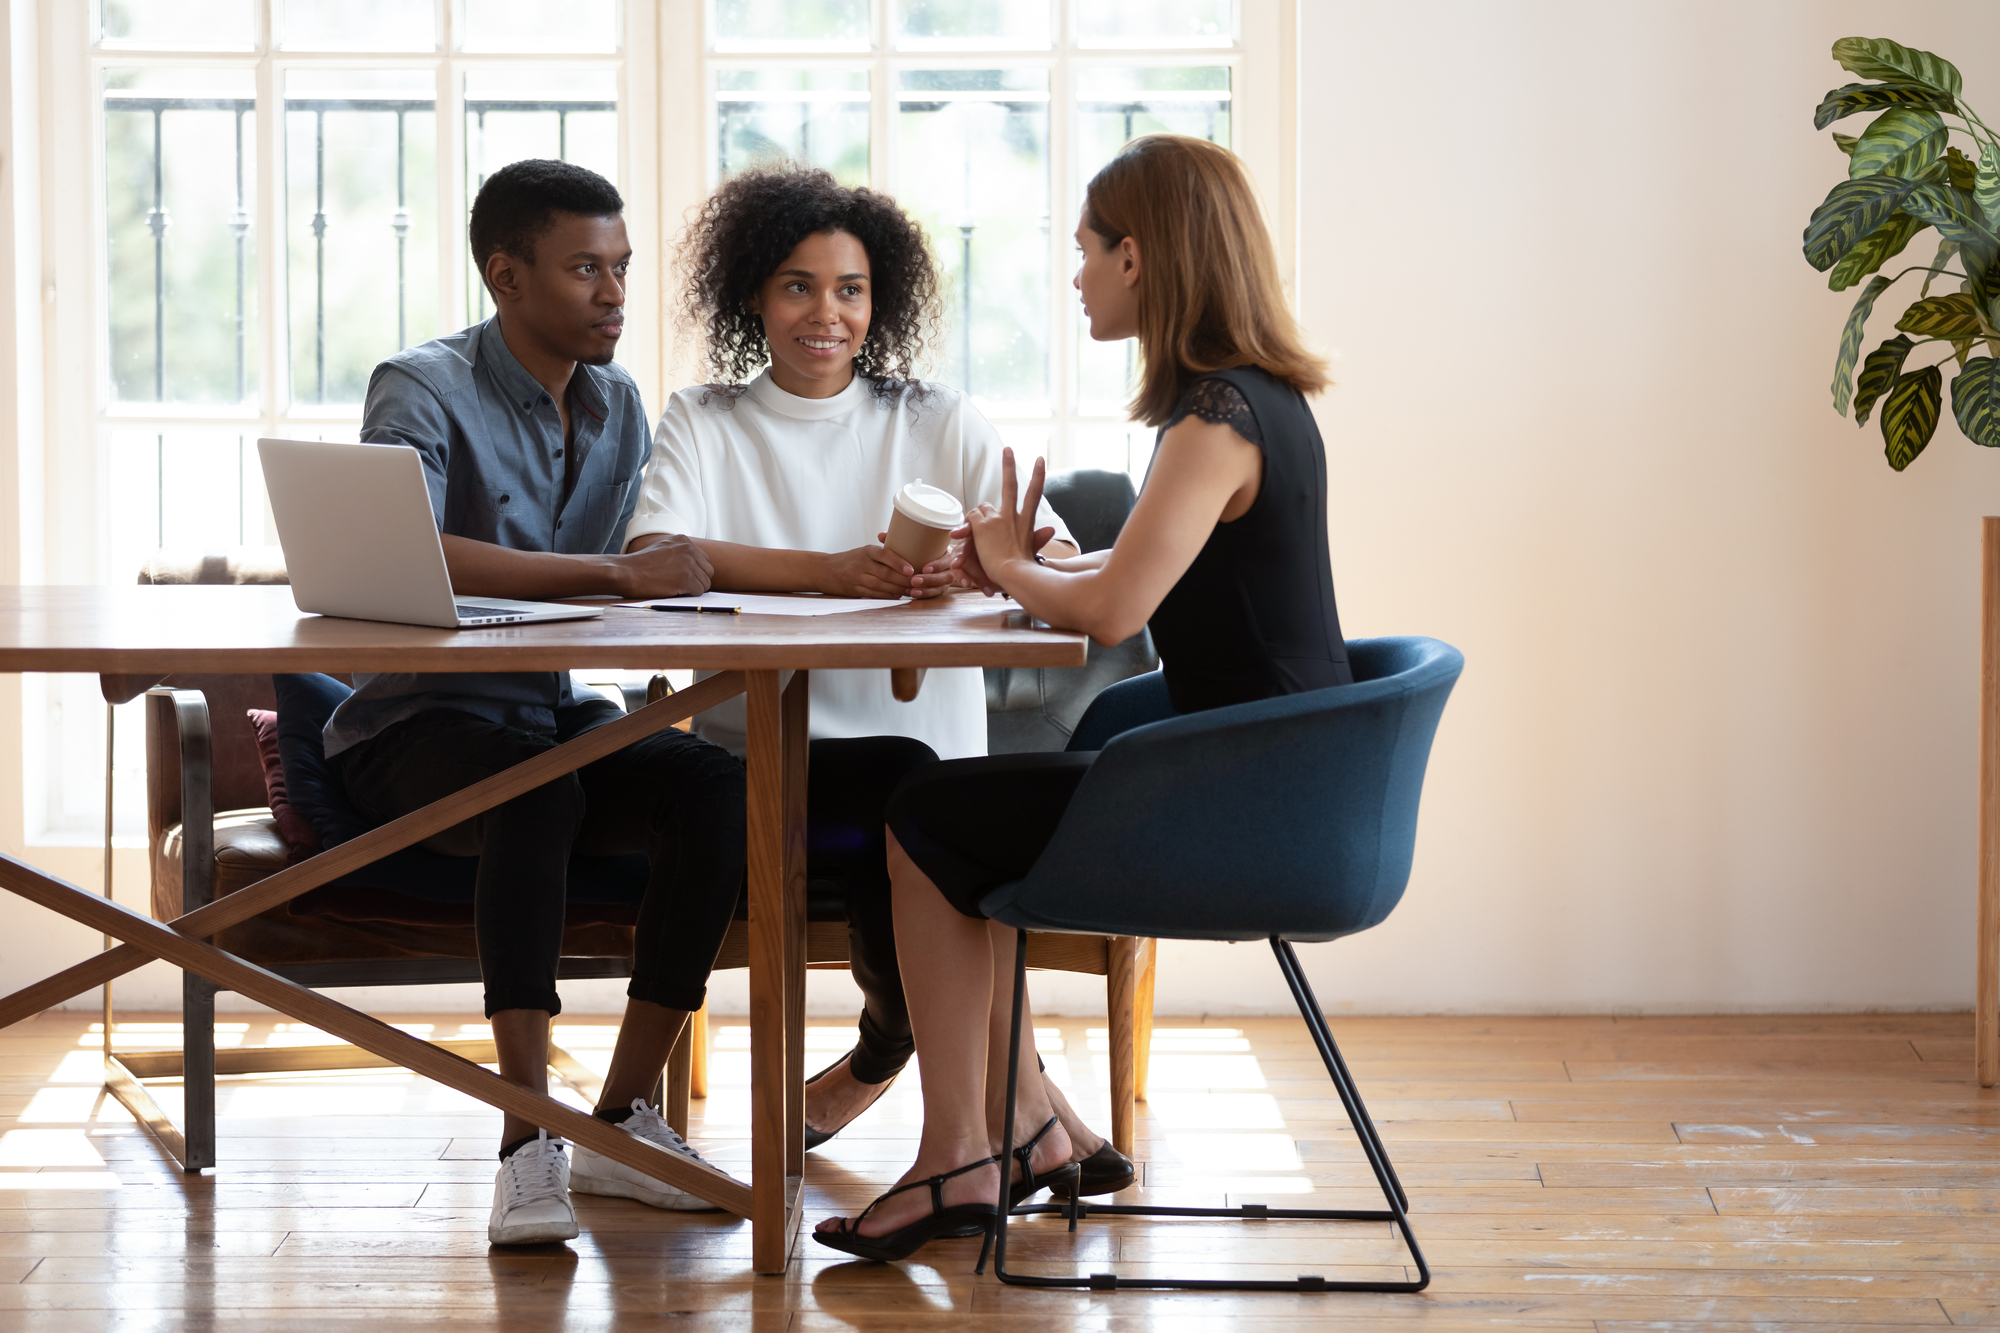 Young biracial couple consulting talking with female designer at meeting — Stock Image